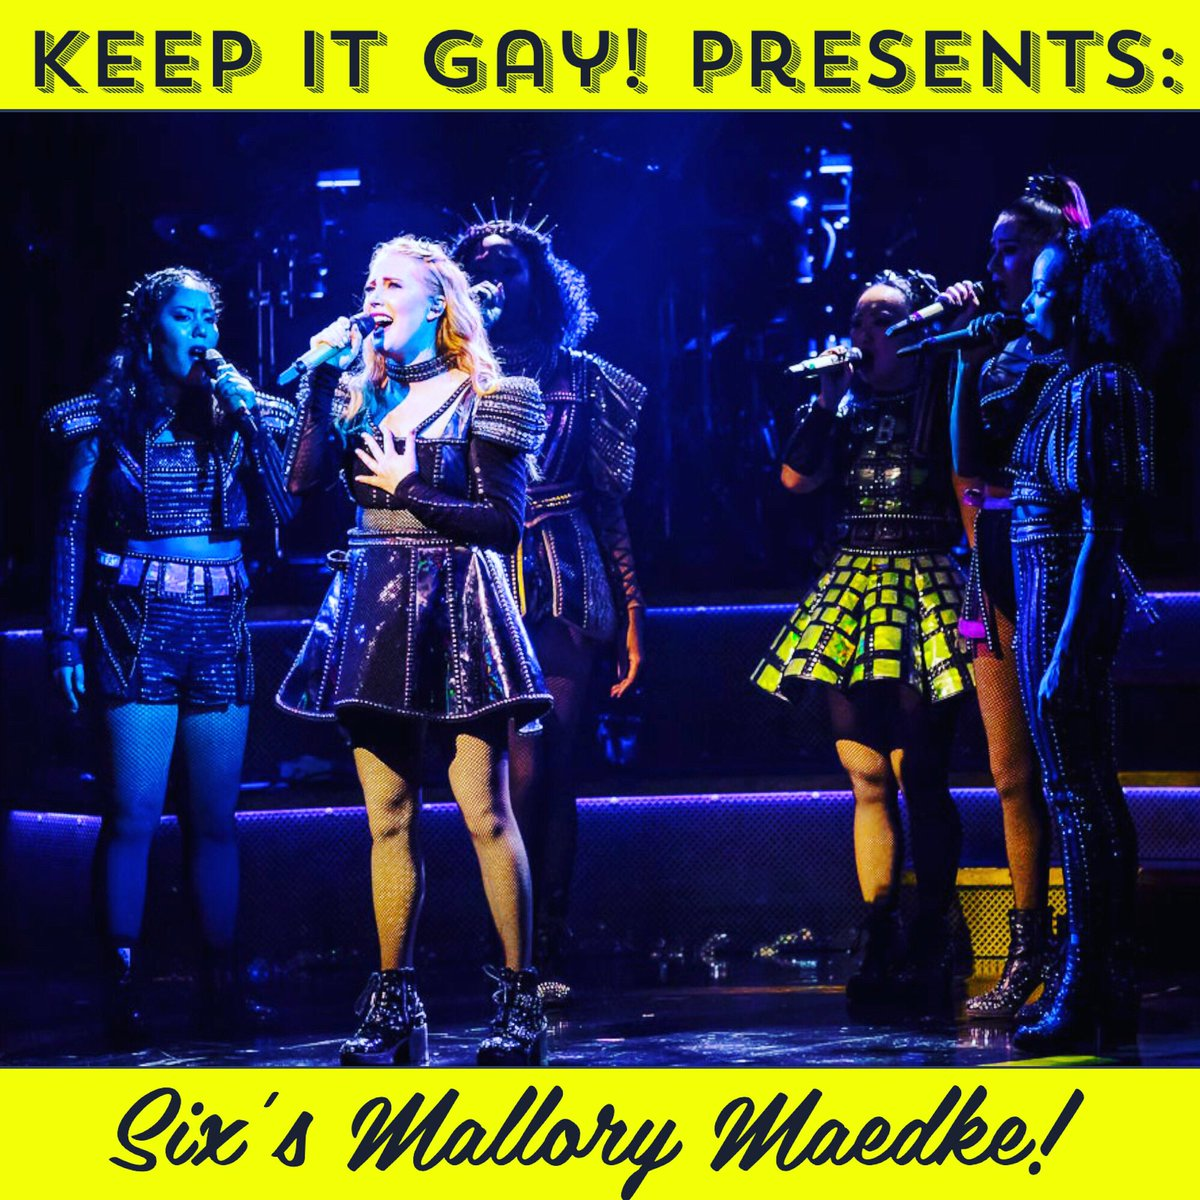 New episode alert! This week Nina and Zach talk to Mallory Maedke from Broadways Six: The Musical about how she got into theatre, her queenspirations, and which Broadway characters might turn into lesbians!  #musicals #broadway  #theatre #gay #lgbtq #pride #SIXTheMusical